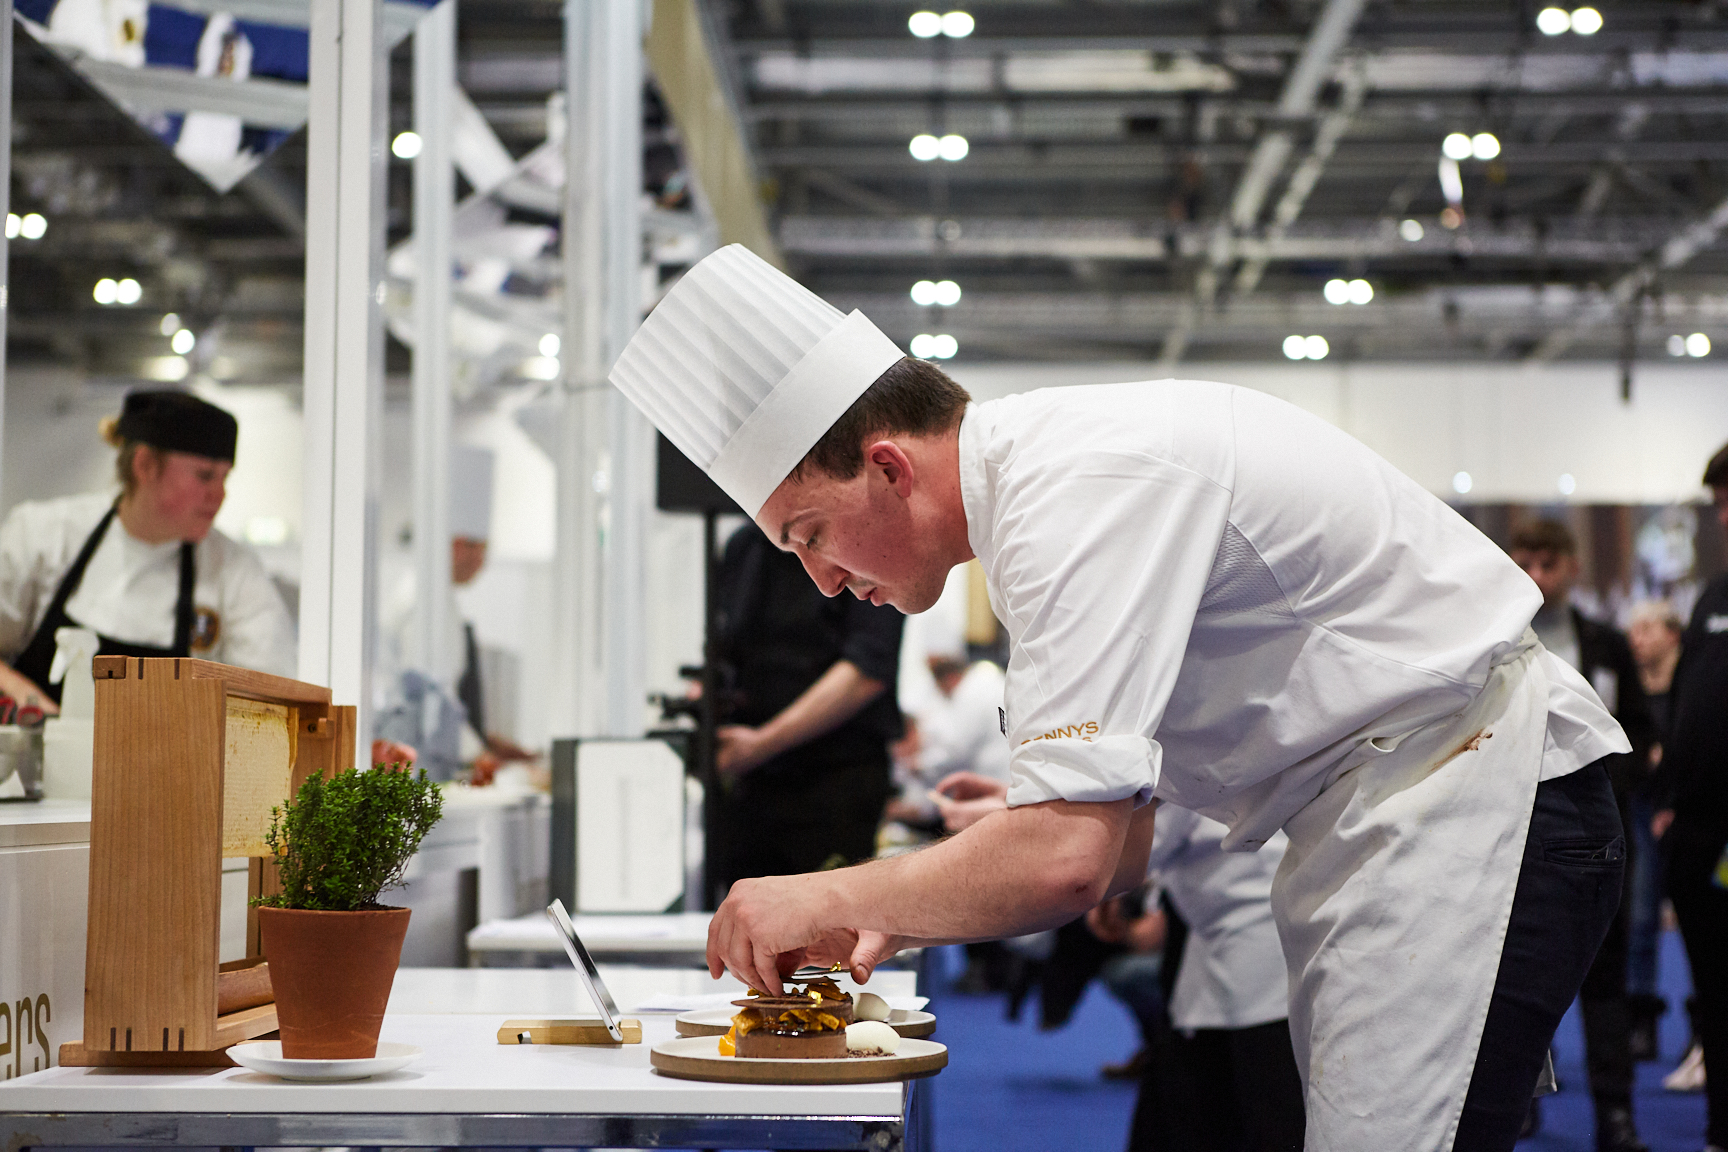 Tilda Chef Team of the Year 2021 Finalists Announced